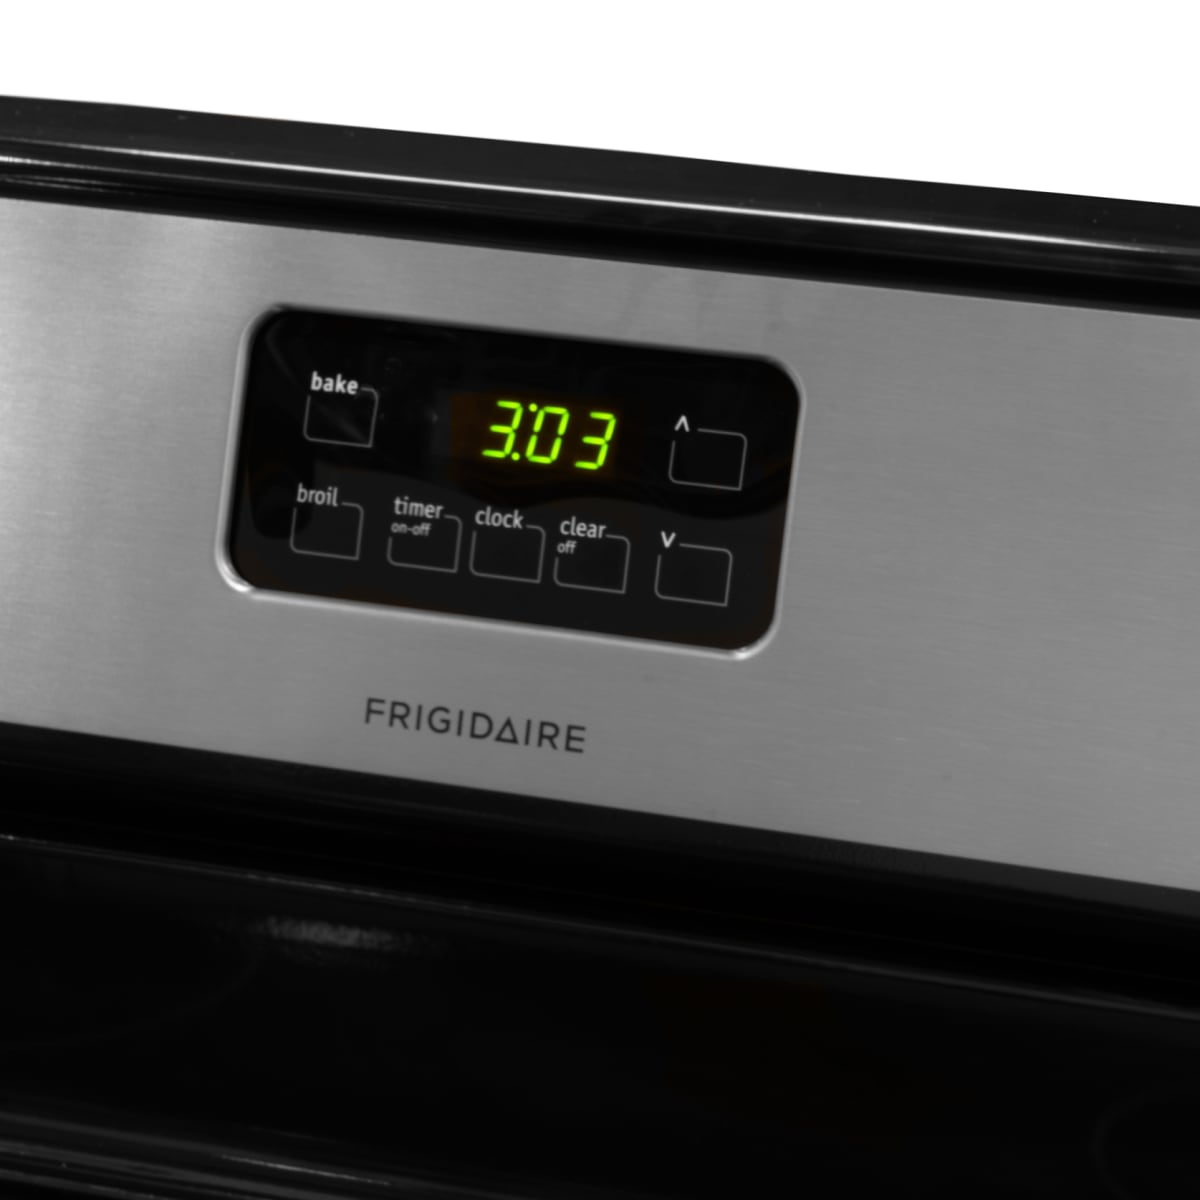 Frigidaire FFEF3043LS Electric Range Review - Reviewed Ovens